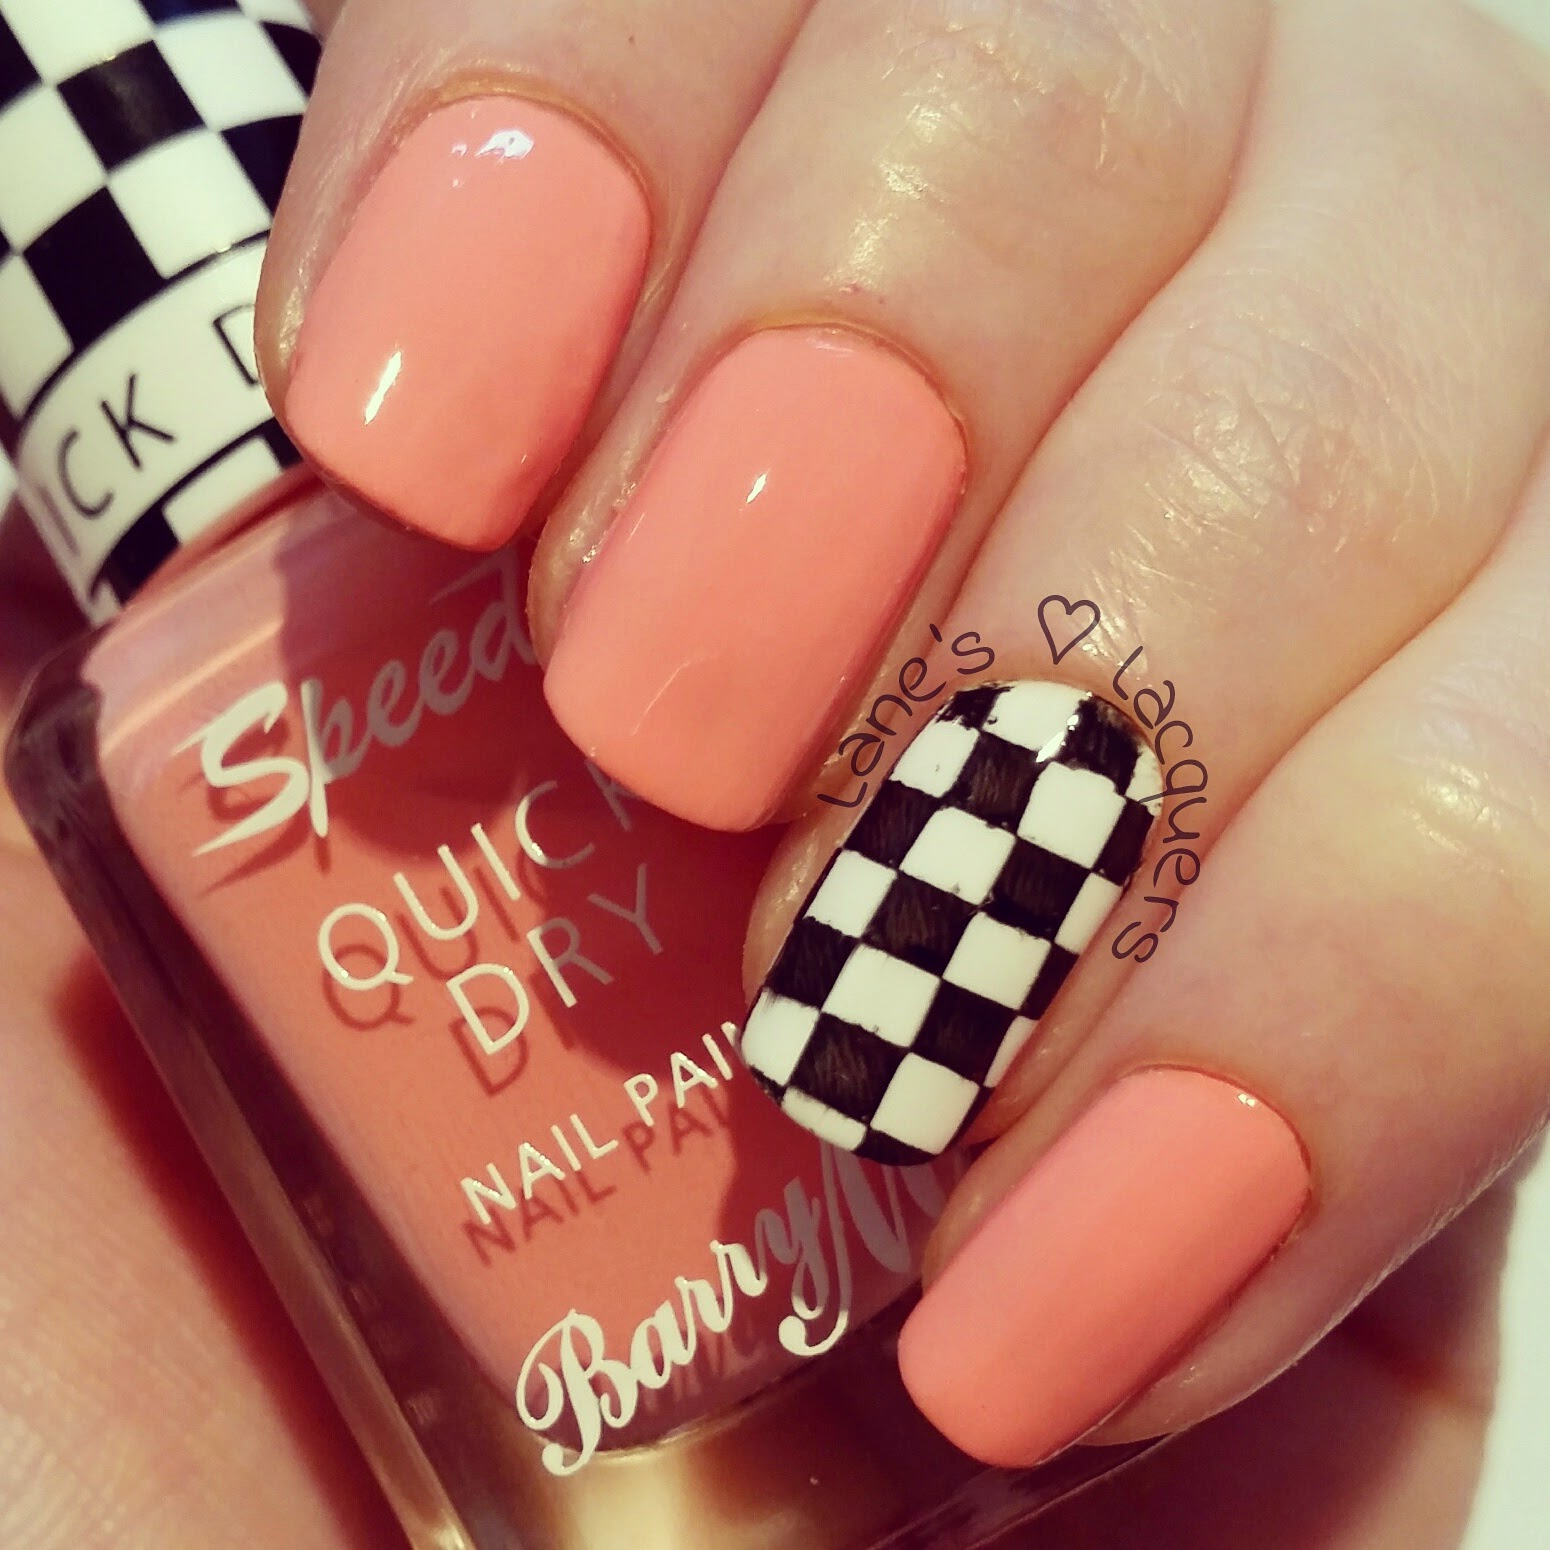 new-barry-m-speedy-quick-dry-in-a-heart-beat-swatch-manicure (2)